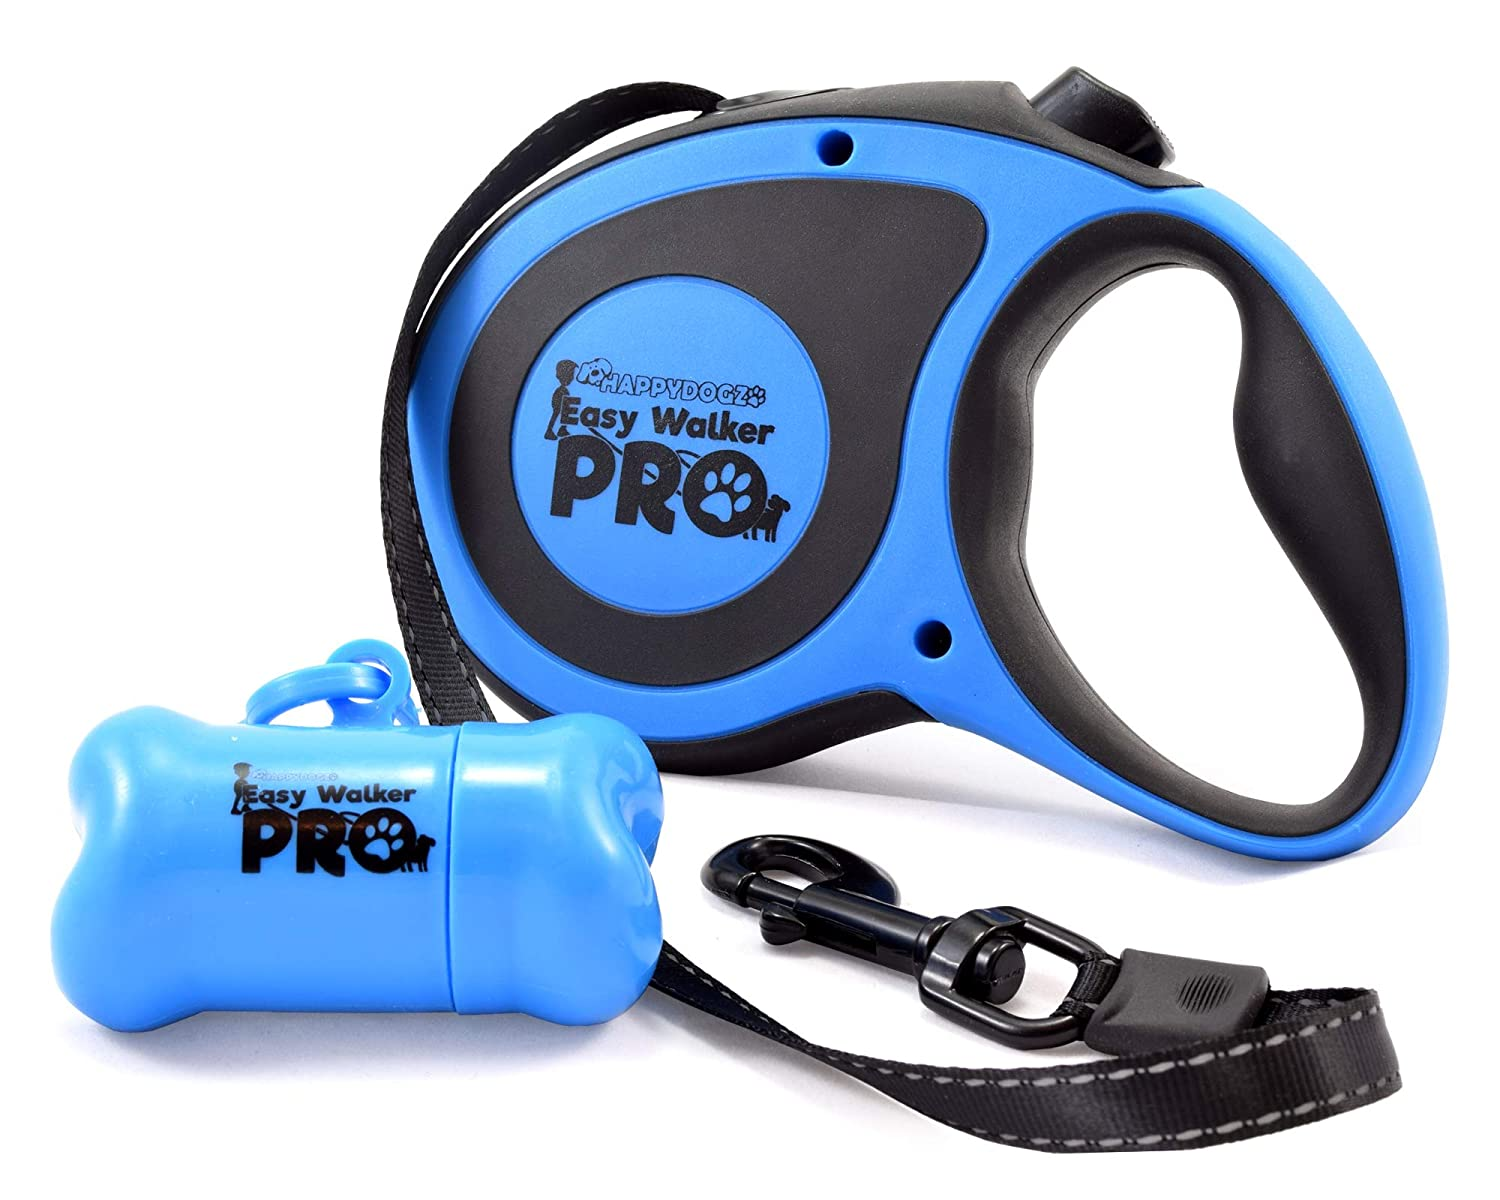 bluee Large bluee Large HappyDogz Easy Walker Pro Retractable Dog Leash with Improved Retracting Mechanism Features a Bigger Ergonomic Handle with a Poop Bag Container Attachment and a Strong Nylon Reflective Tape